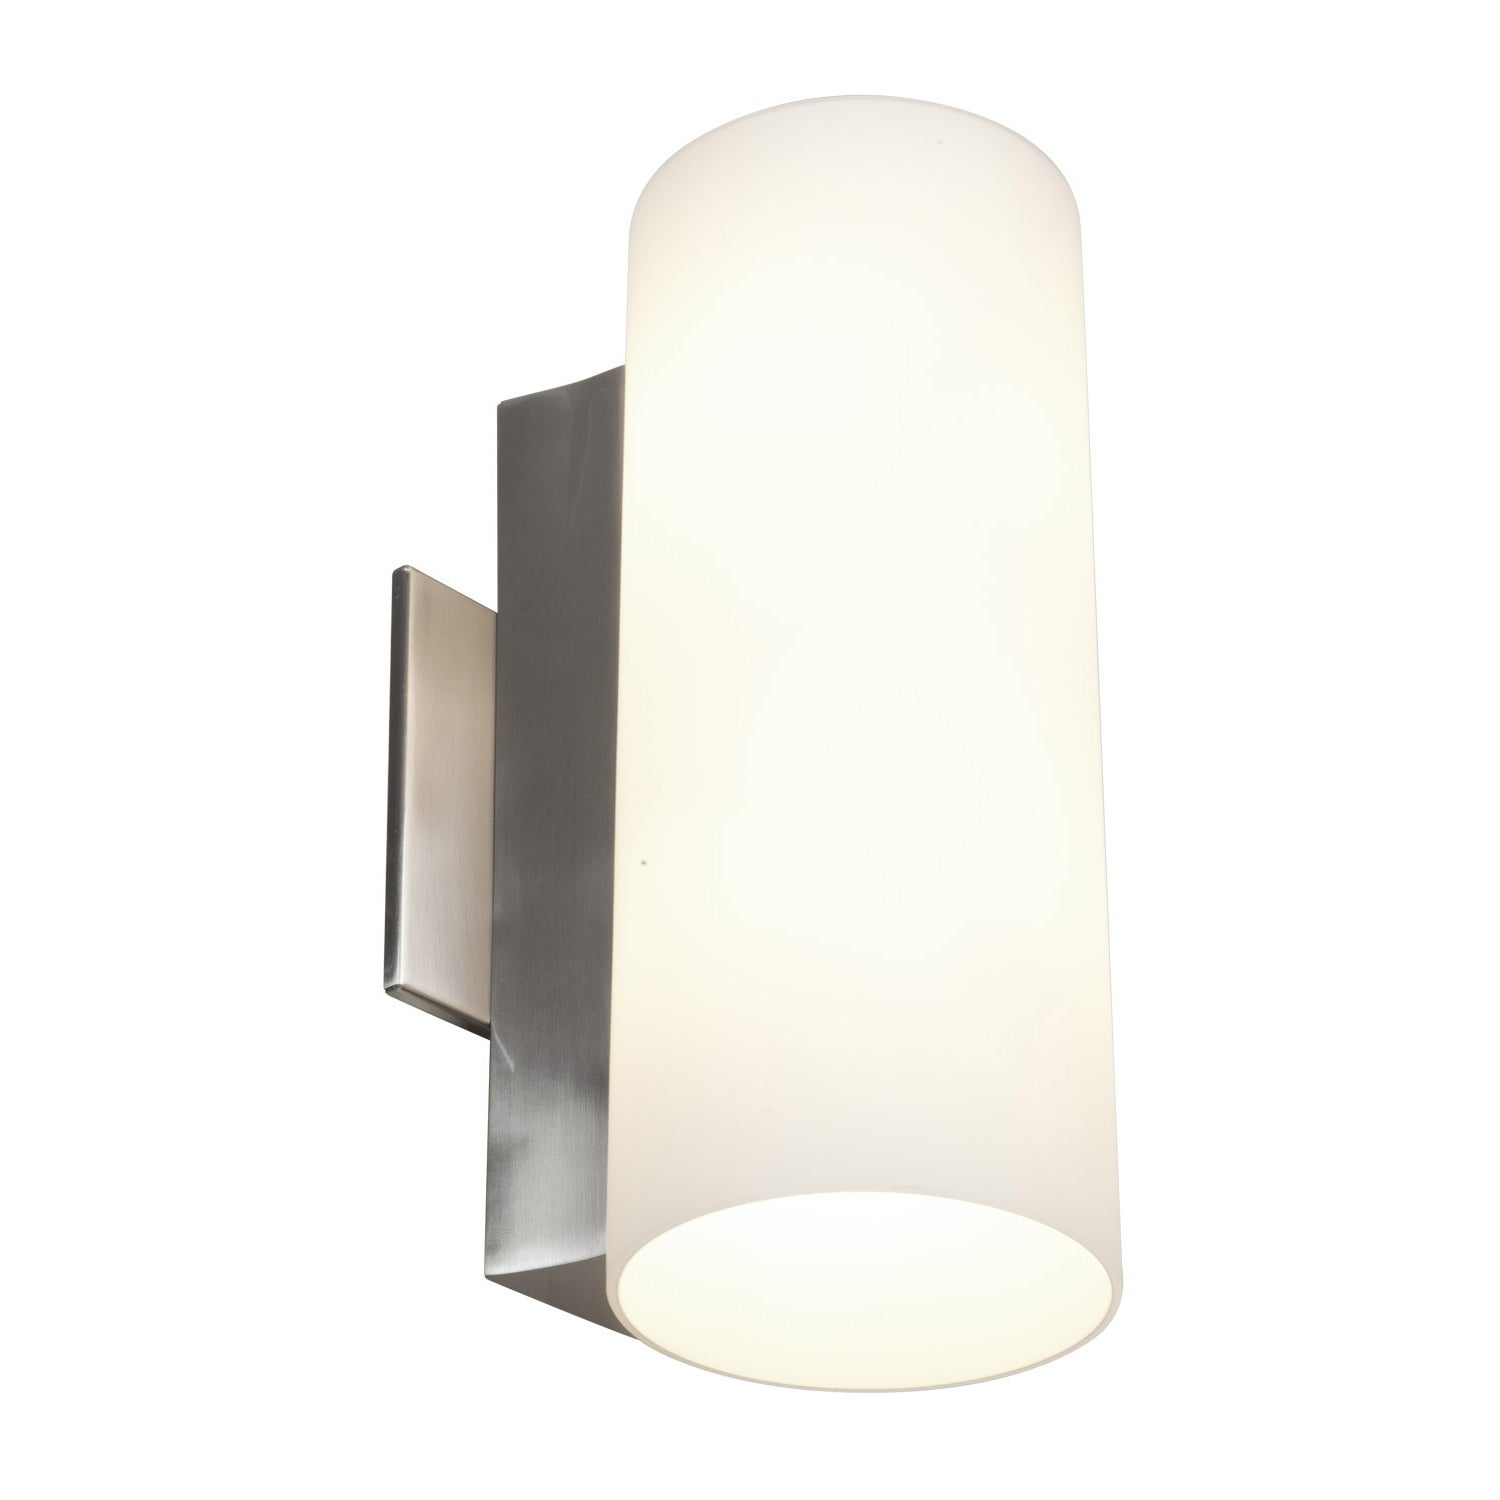 Access Taboo 2-light Brushed Steel 11.8-inch Wall Sconce